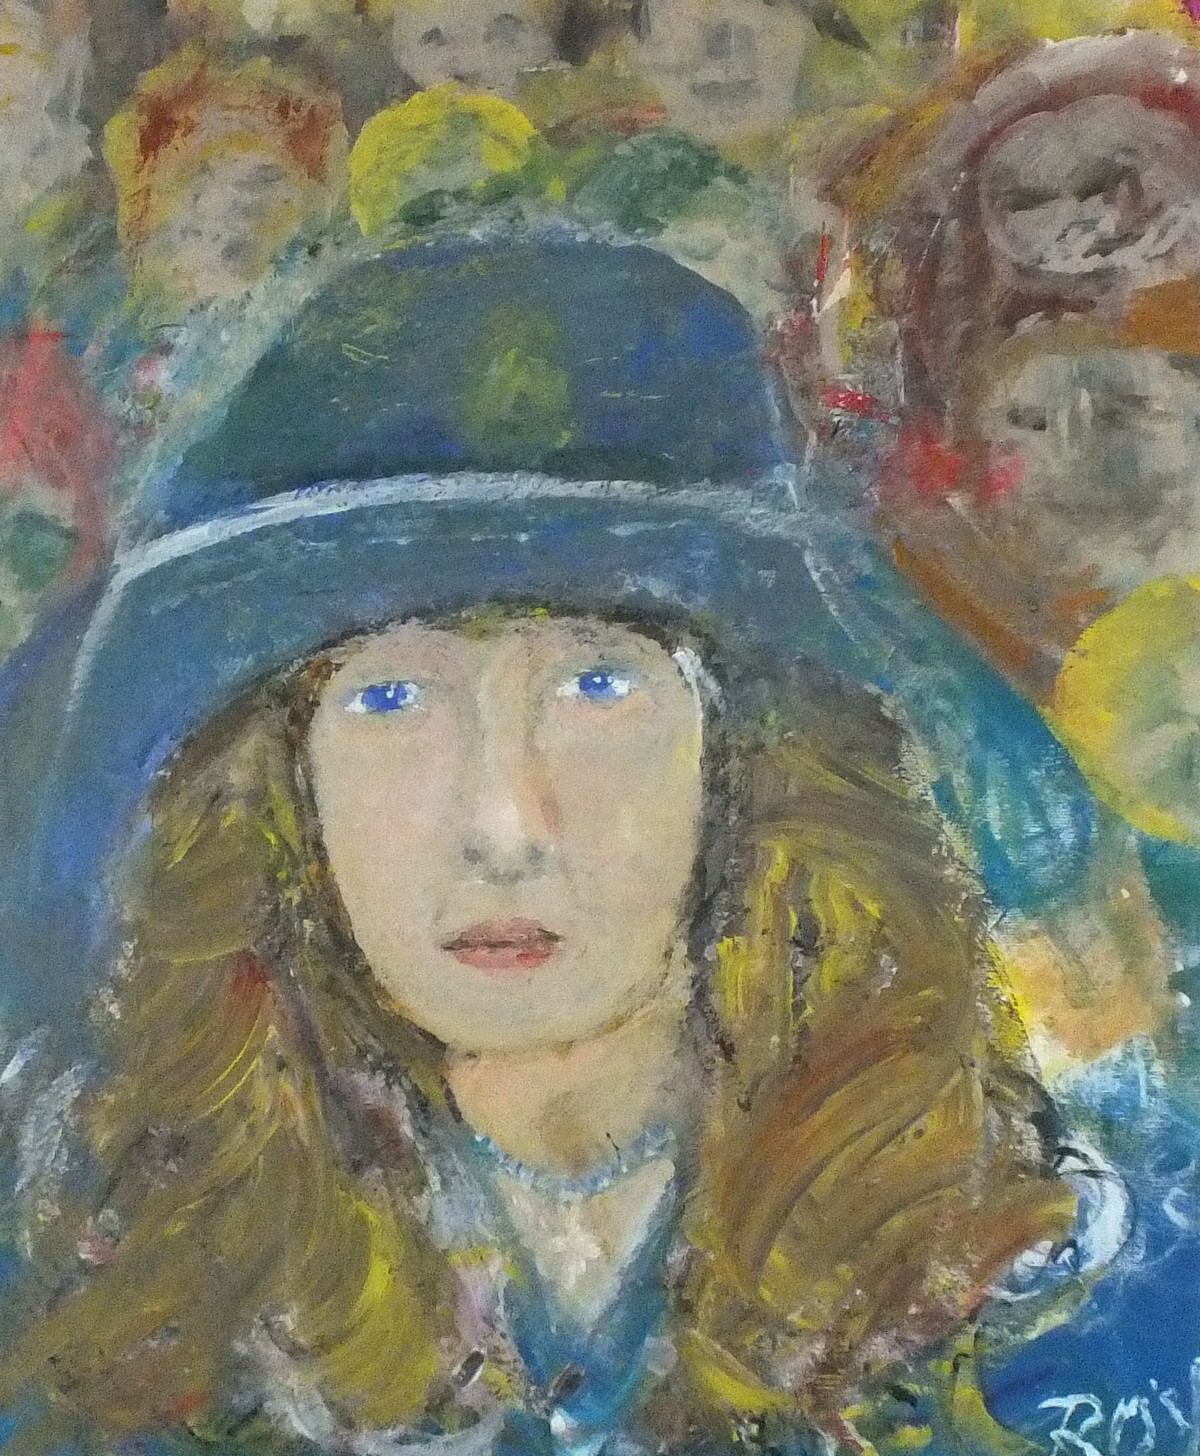 Lot 17 - Roy DAVEY (British b. 1946) A Cornish Girl in a Blue Hat, Oil on board, Signed lower right, Signed